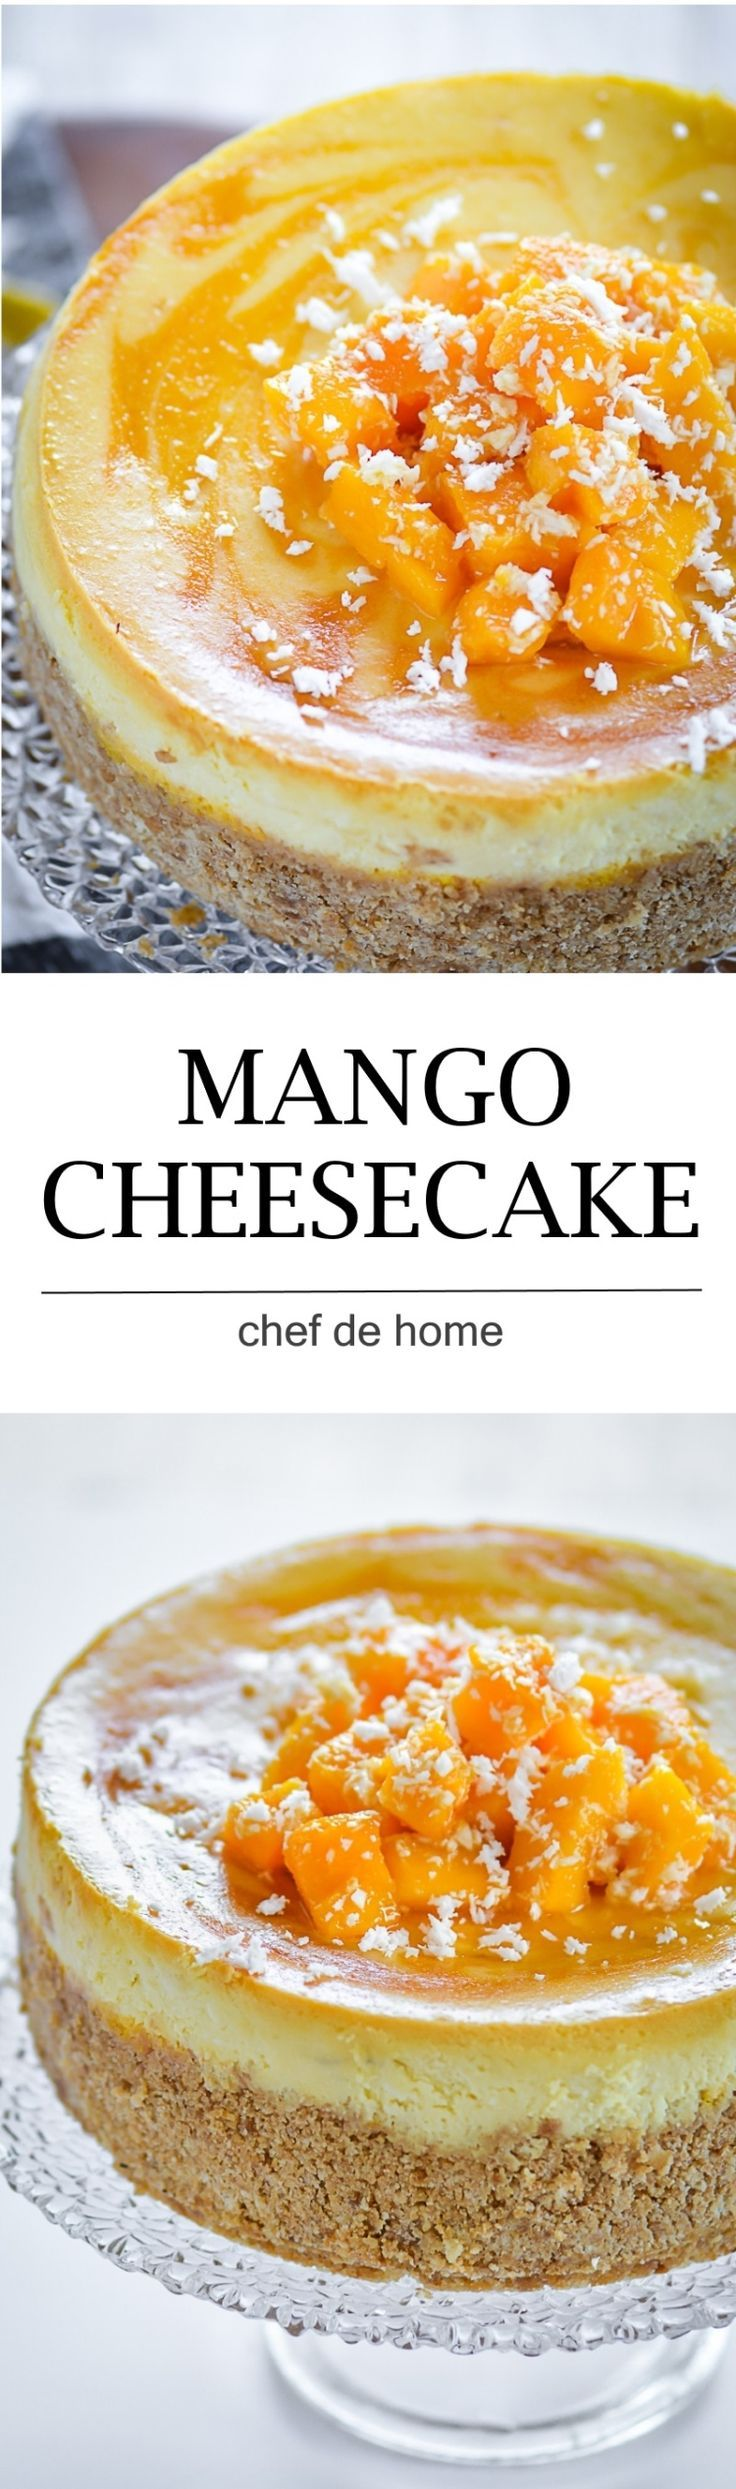 moist and rich easy mango cheesecake with fresh mangoes and sour cream and baking technique to bake extra lite cake | http://chefdehome.com